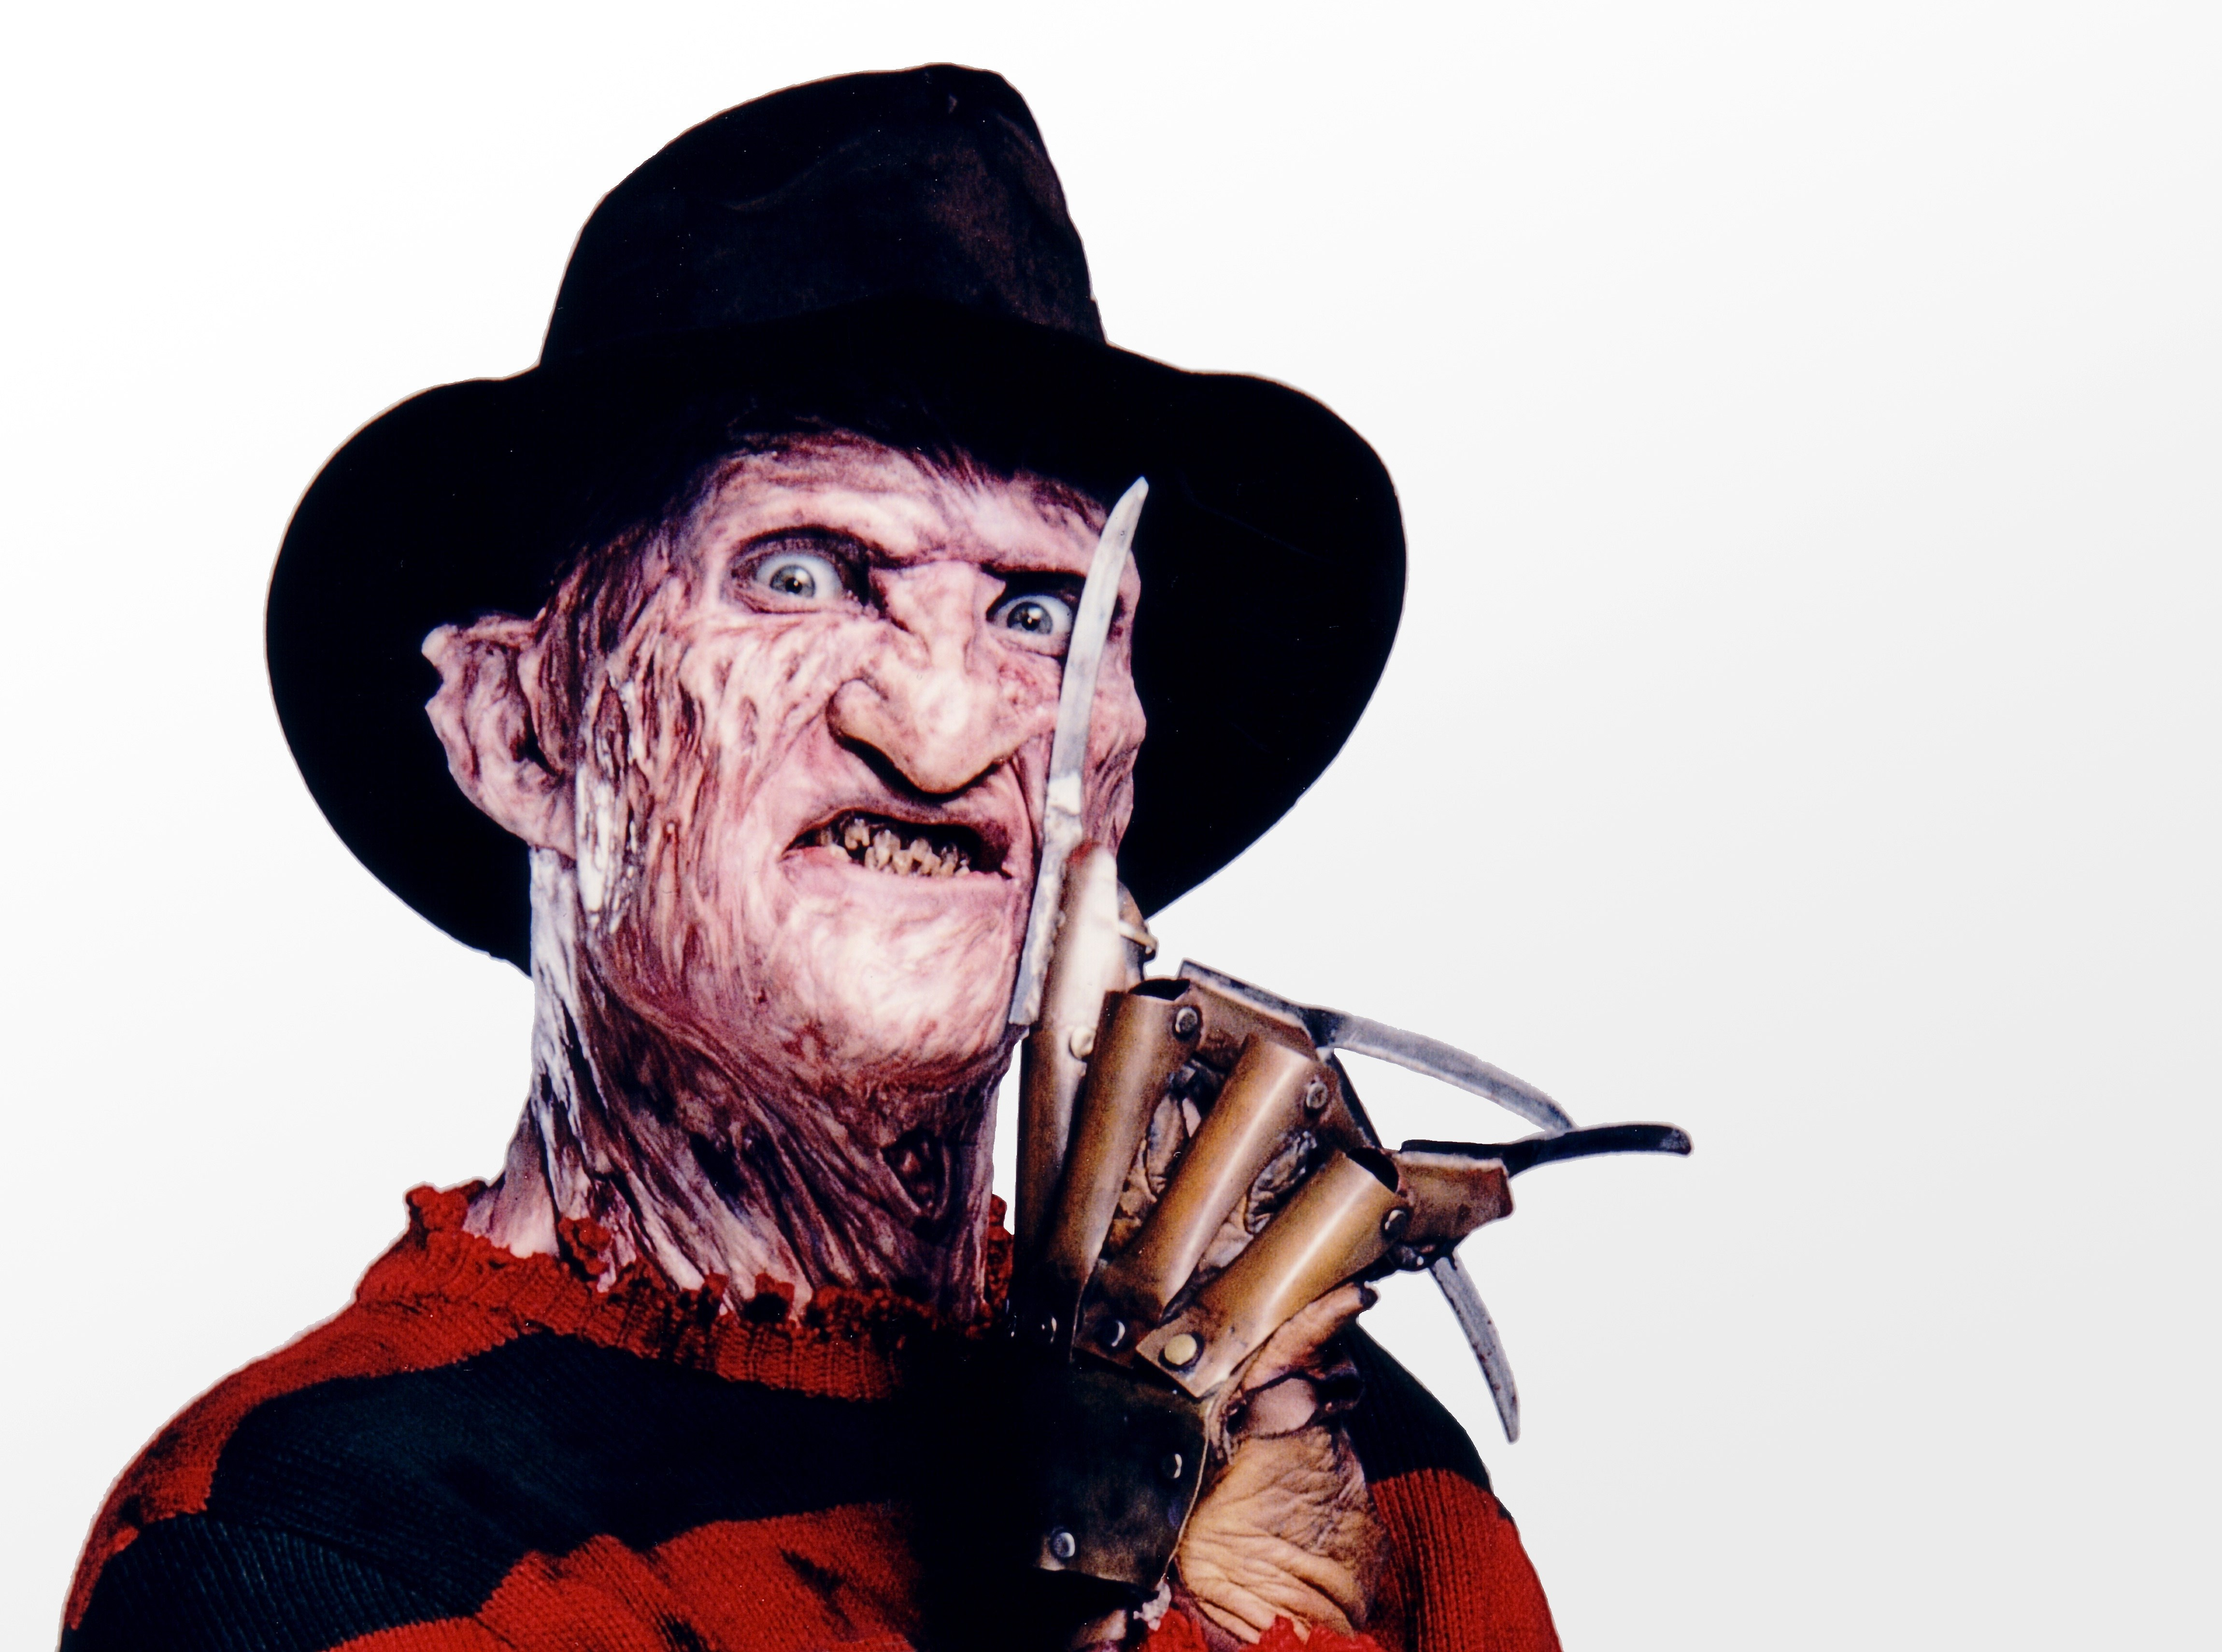 freddy krueger Frederick charles freddy krueger, known simply as freddy krueger, is a legendary serial killer and the main antagonist of the 1984 classic horror film a.